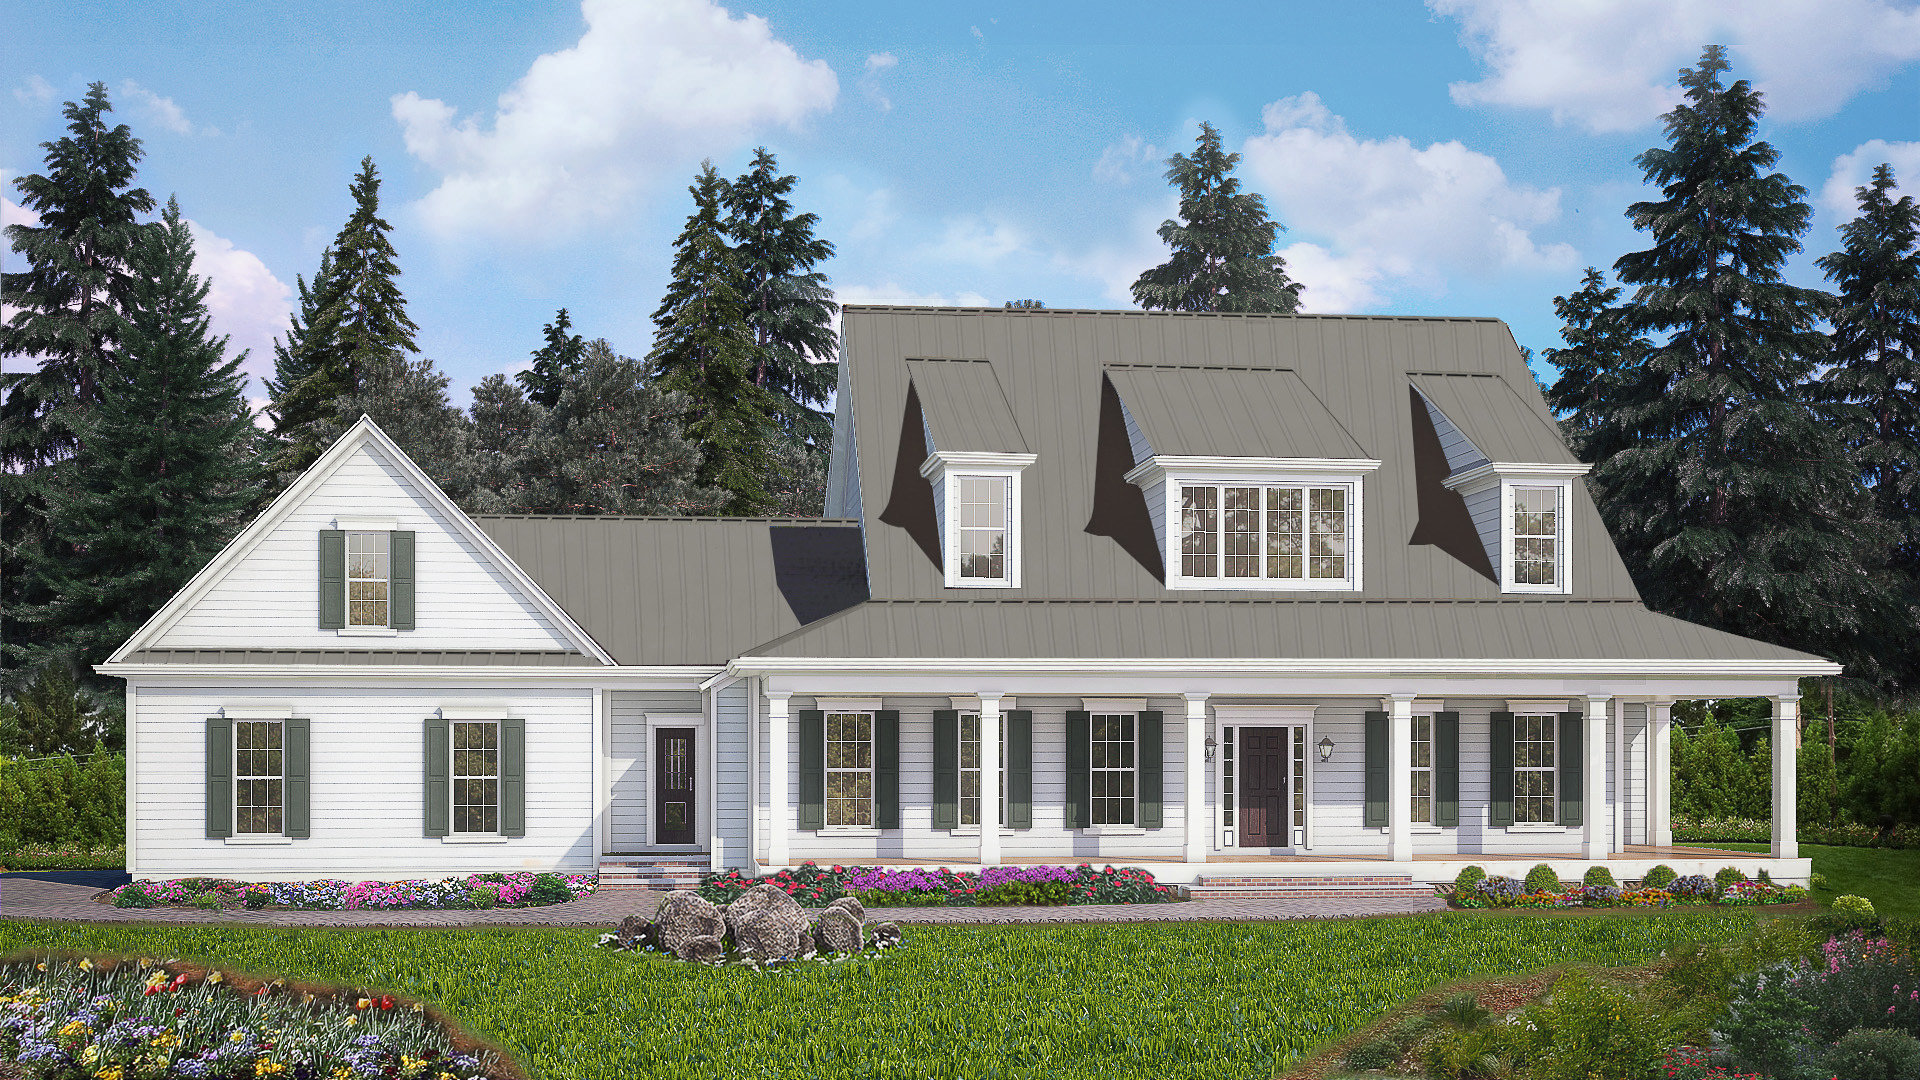 4 Bed Modern Farmhouse With Front And Rear Porches